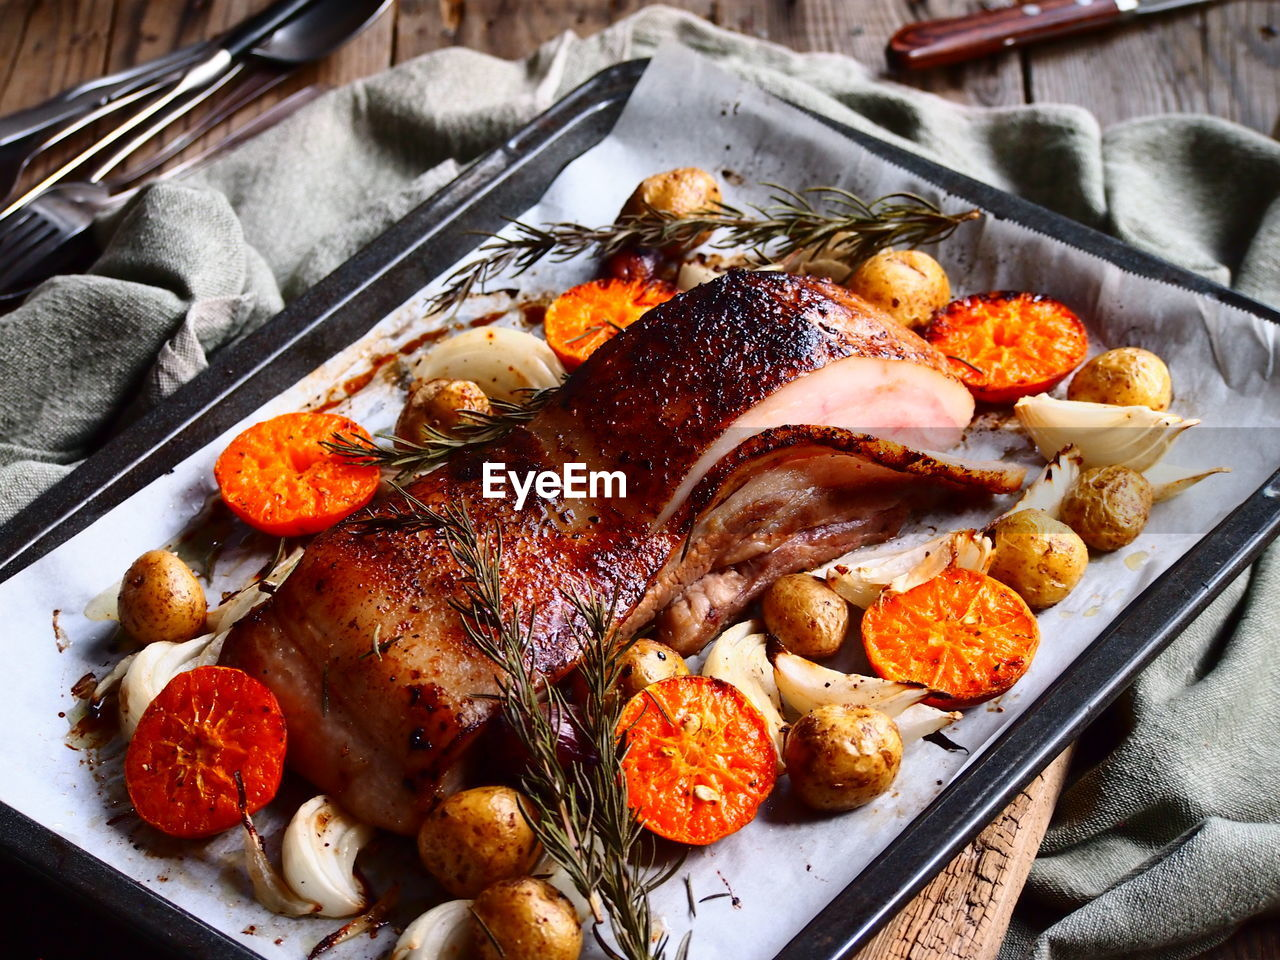 High angle close-up of roasted pork served in tray on table